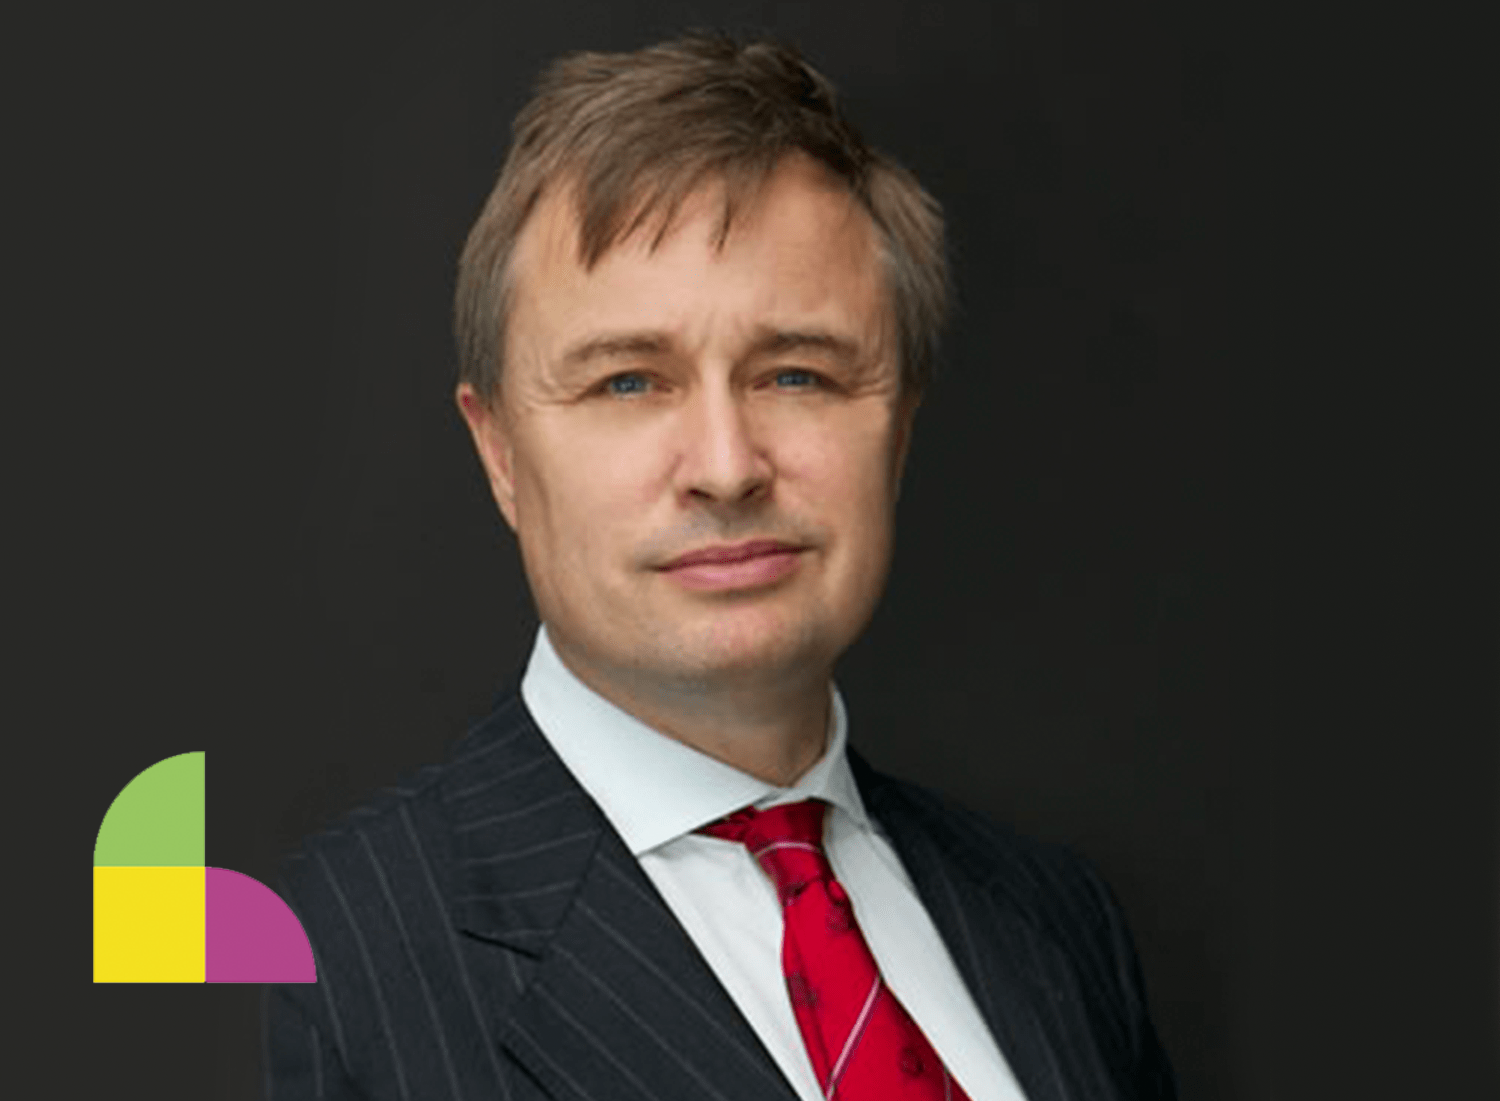 An image of John Allen, Chair of the Be. Institute, with a yellow, green, and pink icon in the bottom left hand corner, representing the concept of leadership